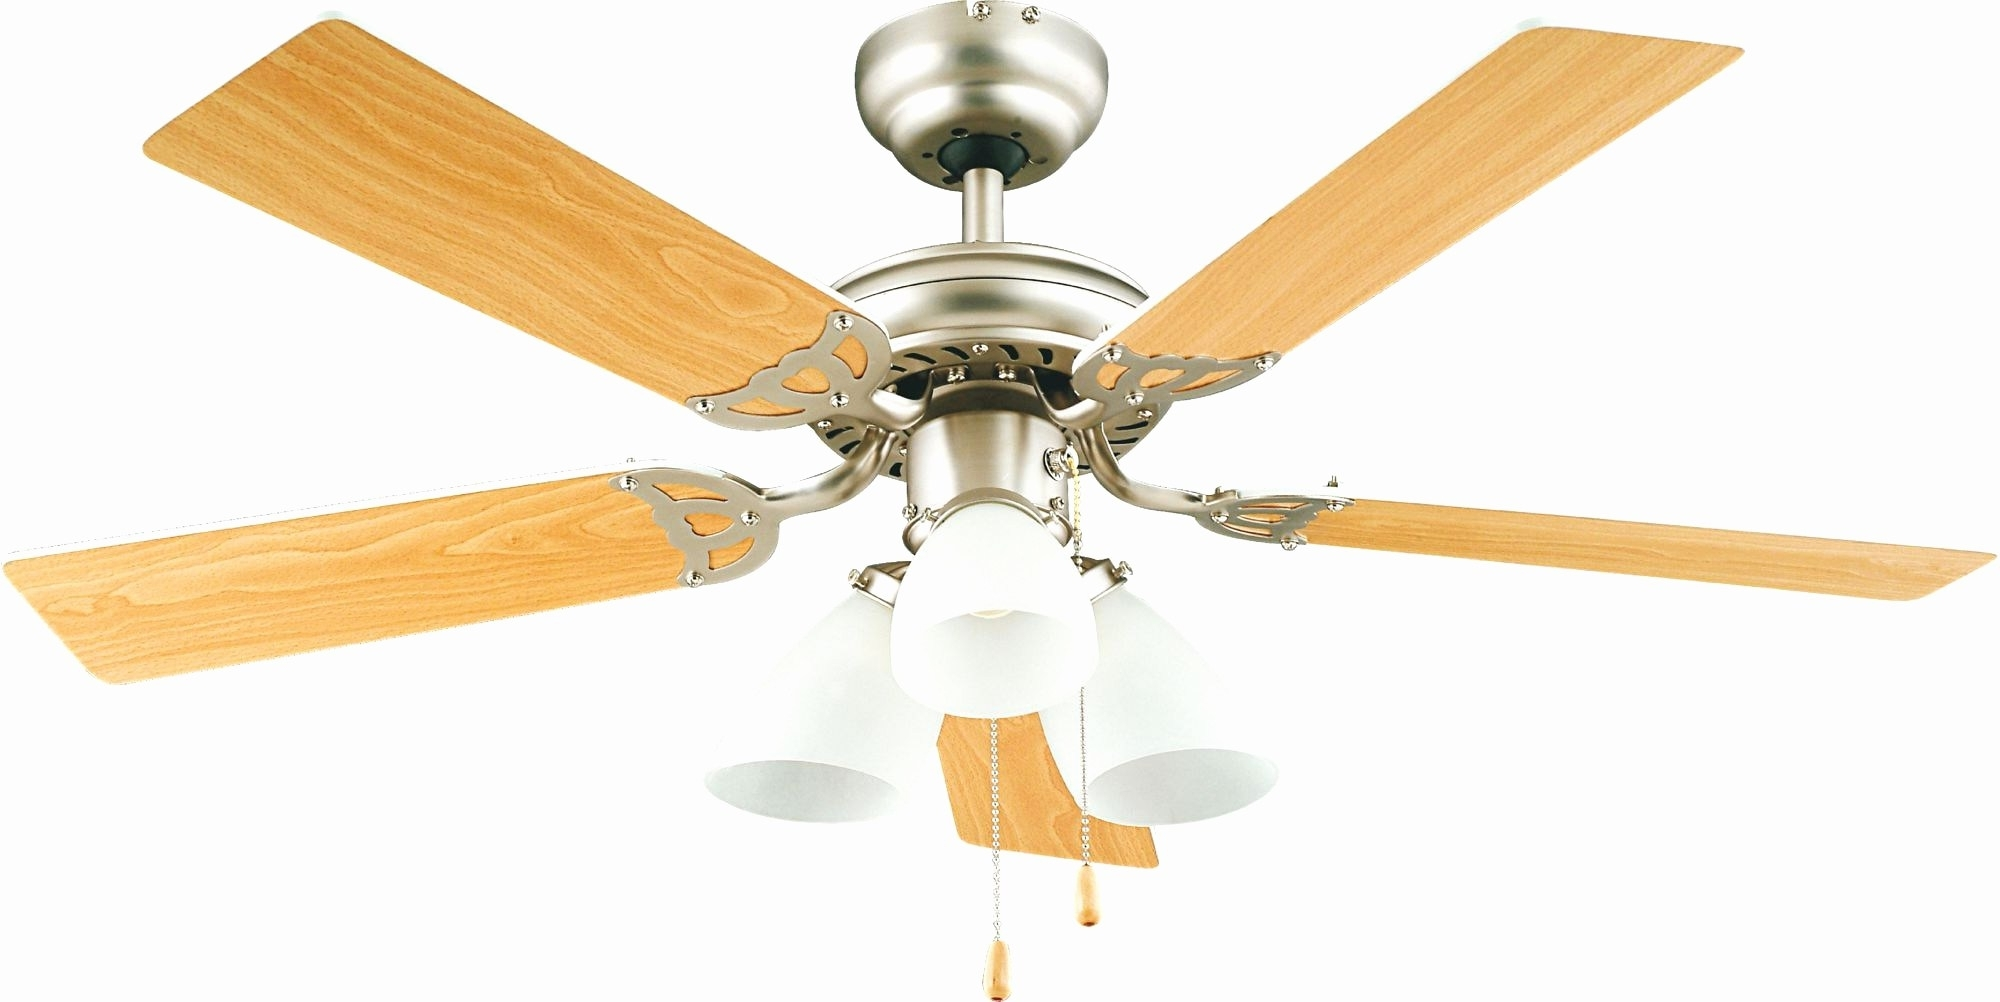 Outdoor Ceiling Fans For Windy Areas Regarding Fashionable Artistic Of Kitchen Ceiling Fan Light Outdoor Ceiling Fans Light (View 18 of 20)